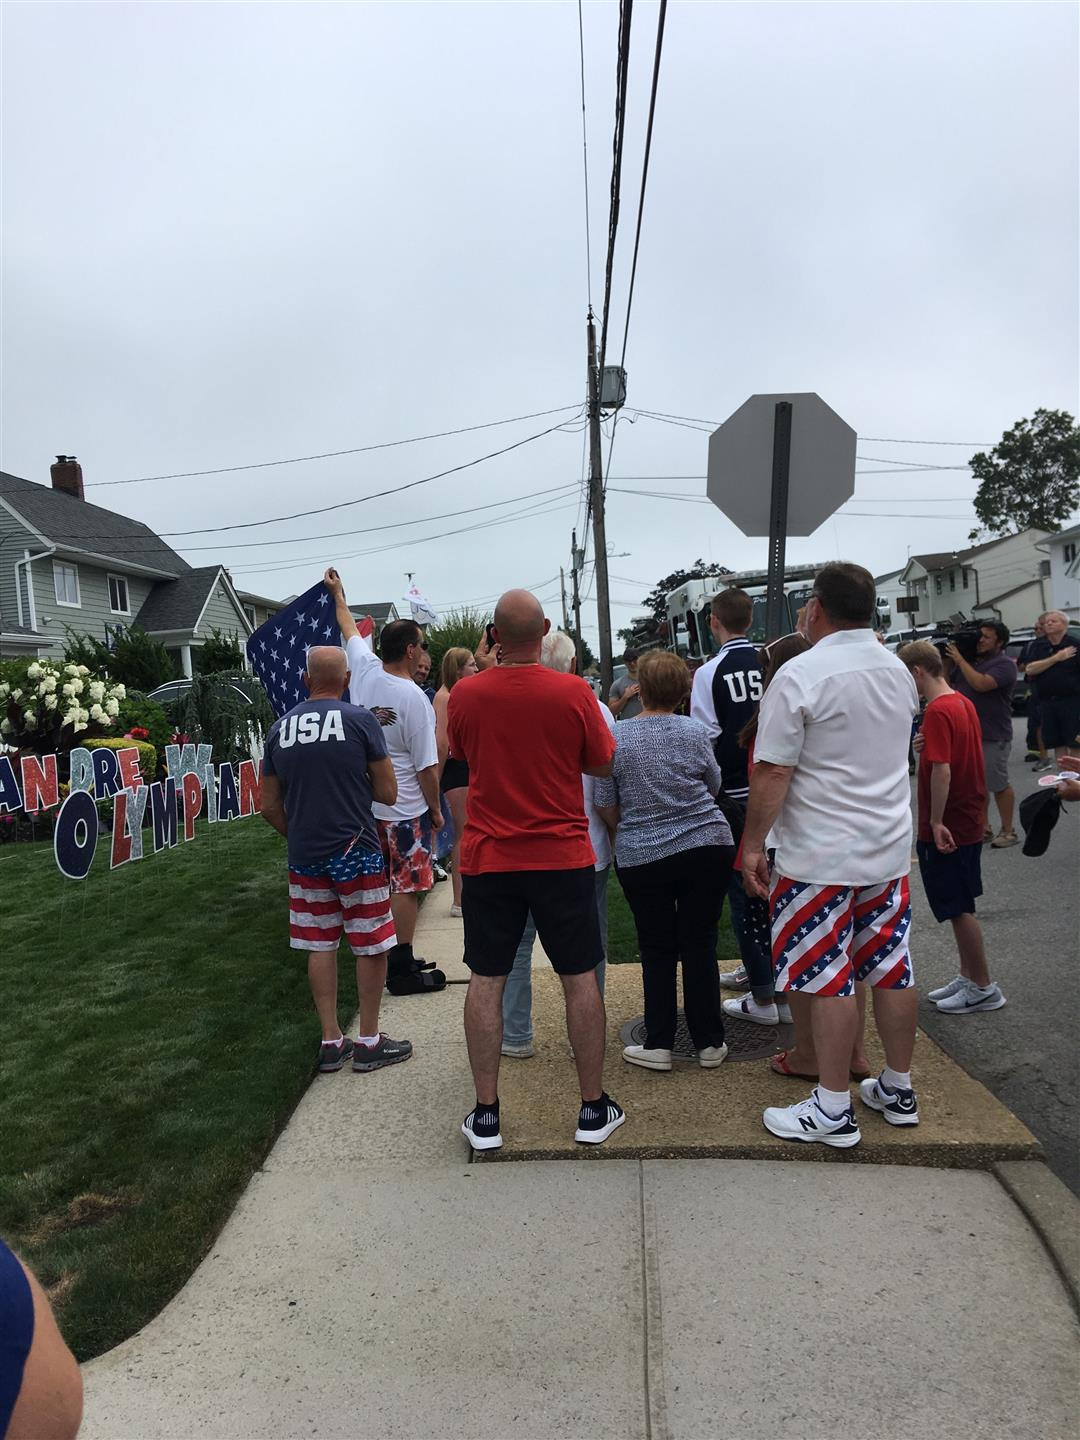 people gathered on a sidewalk to celebrate USA silver medalist in diving Andrew Capobianco